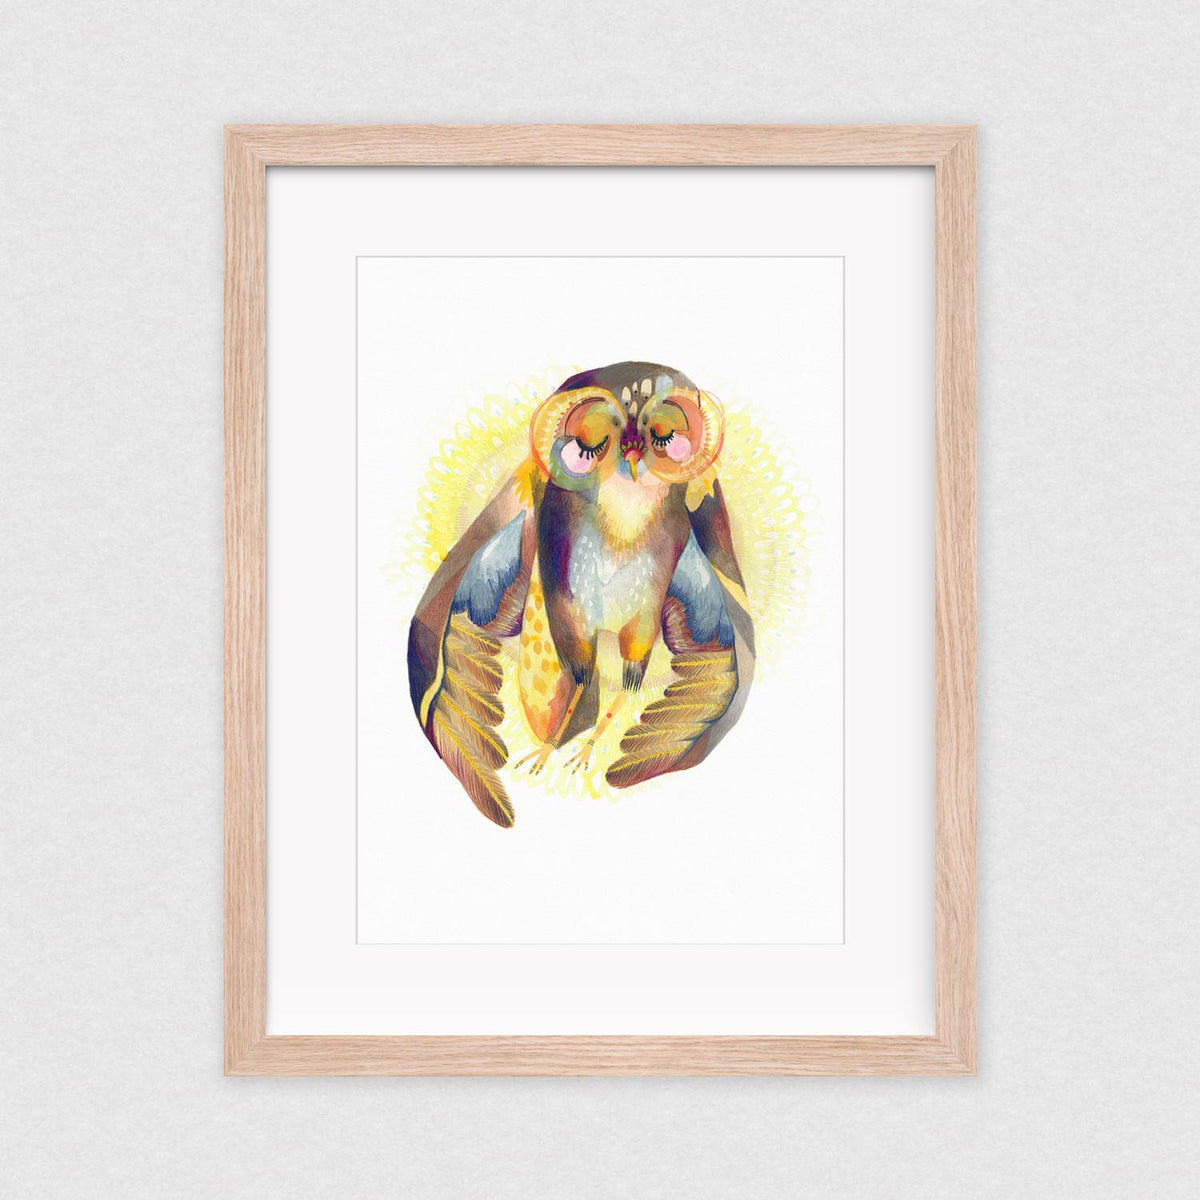 Let the Sun Shine In - Framed Limited Edition Print | by Natalie Martin - Framed Prints - Throw Some Seeds - Australian gardening gifts and eco products online!